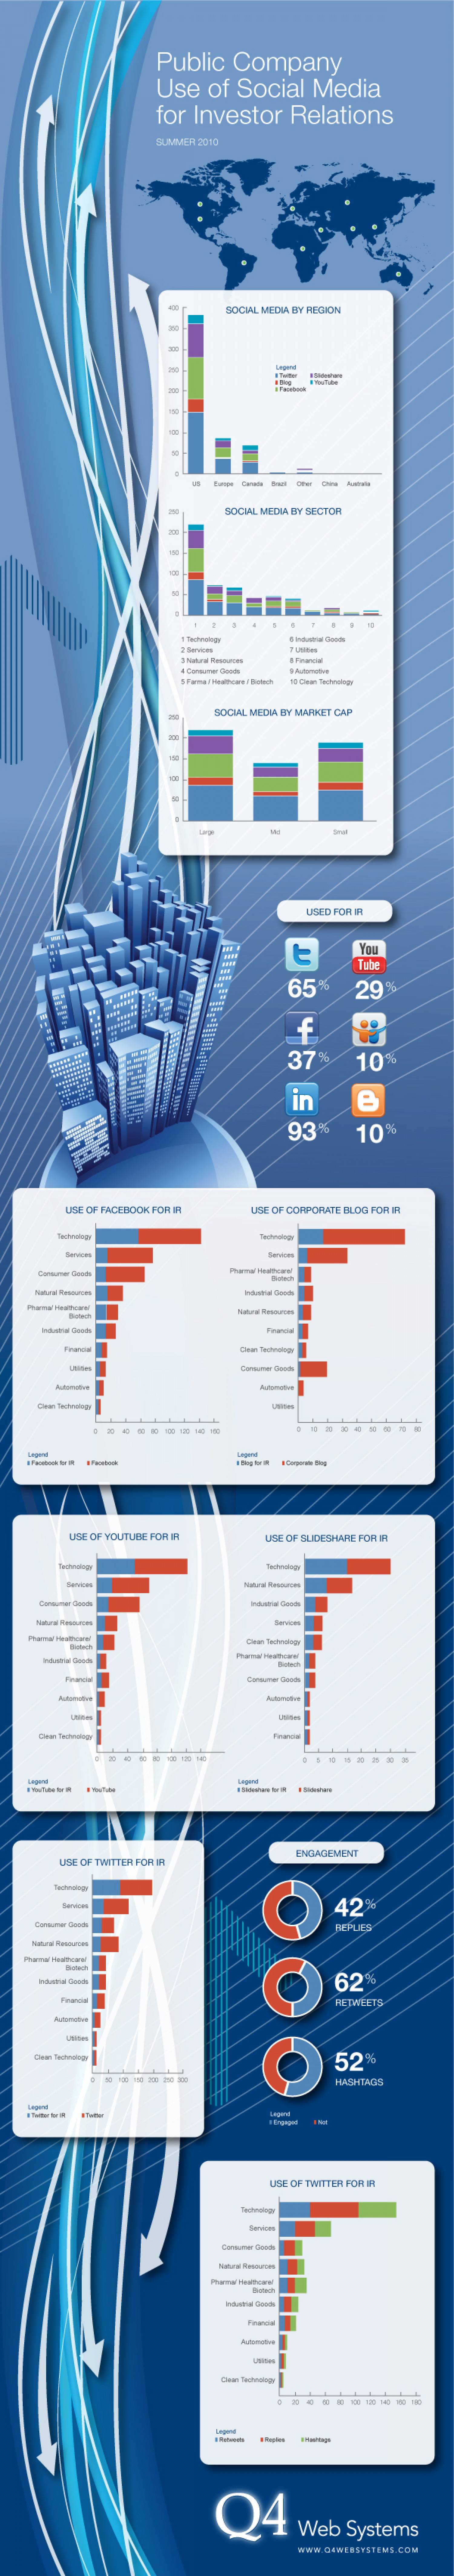 Public Company Use of Social Media for Investor Relations Infographic